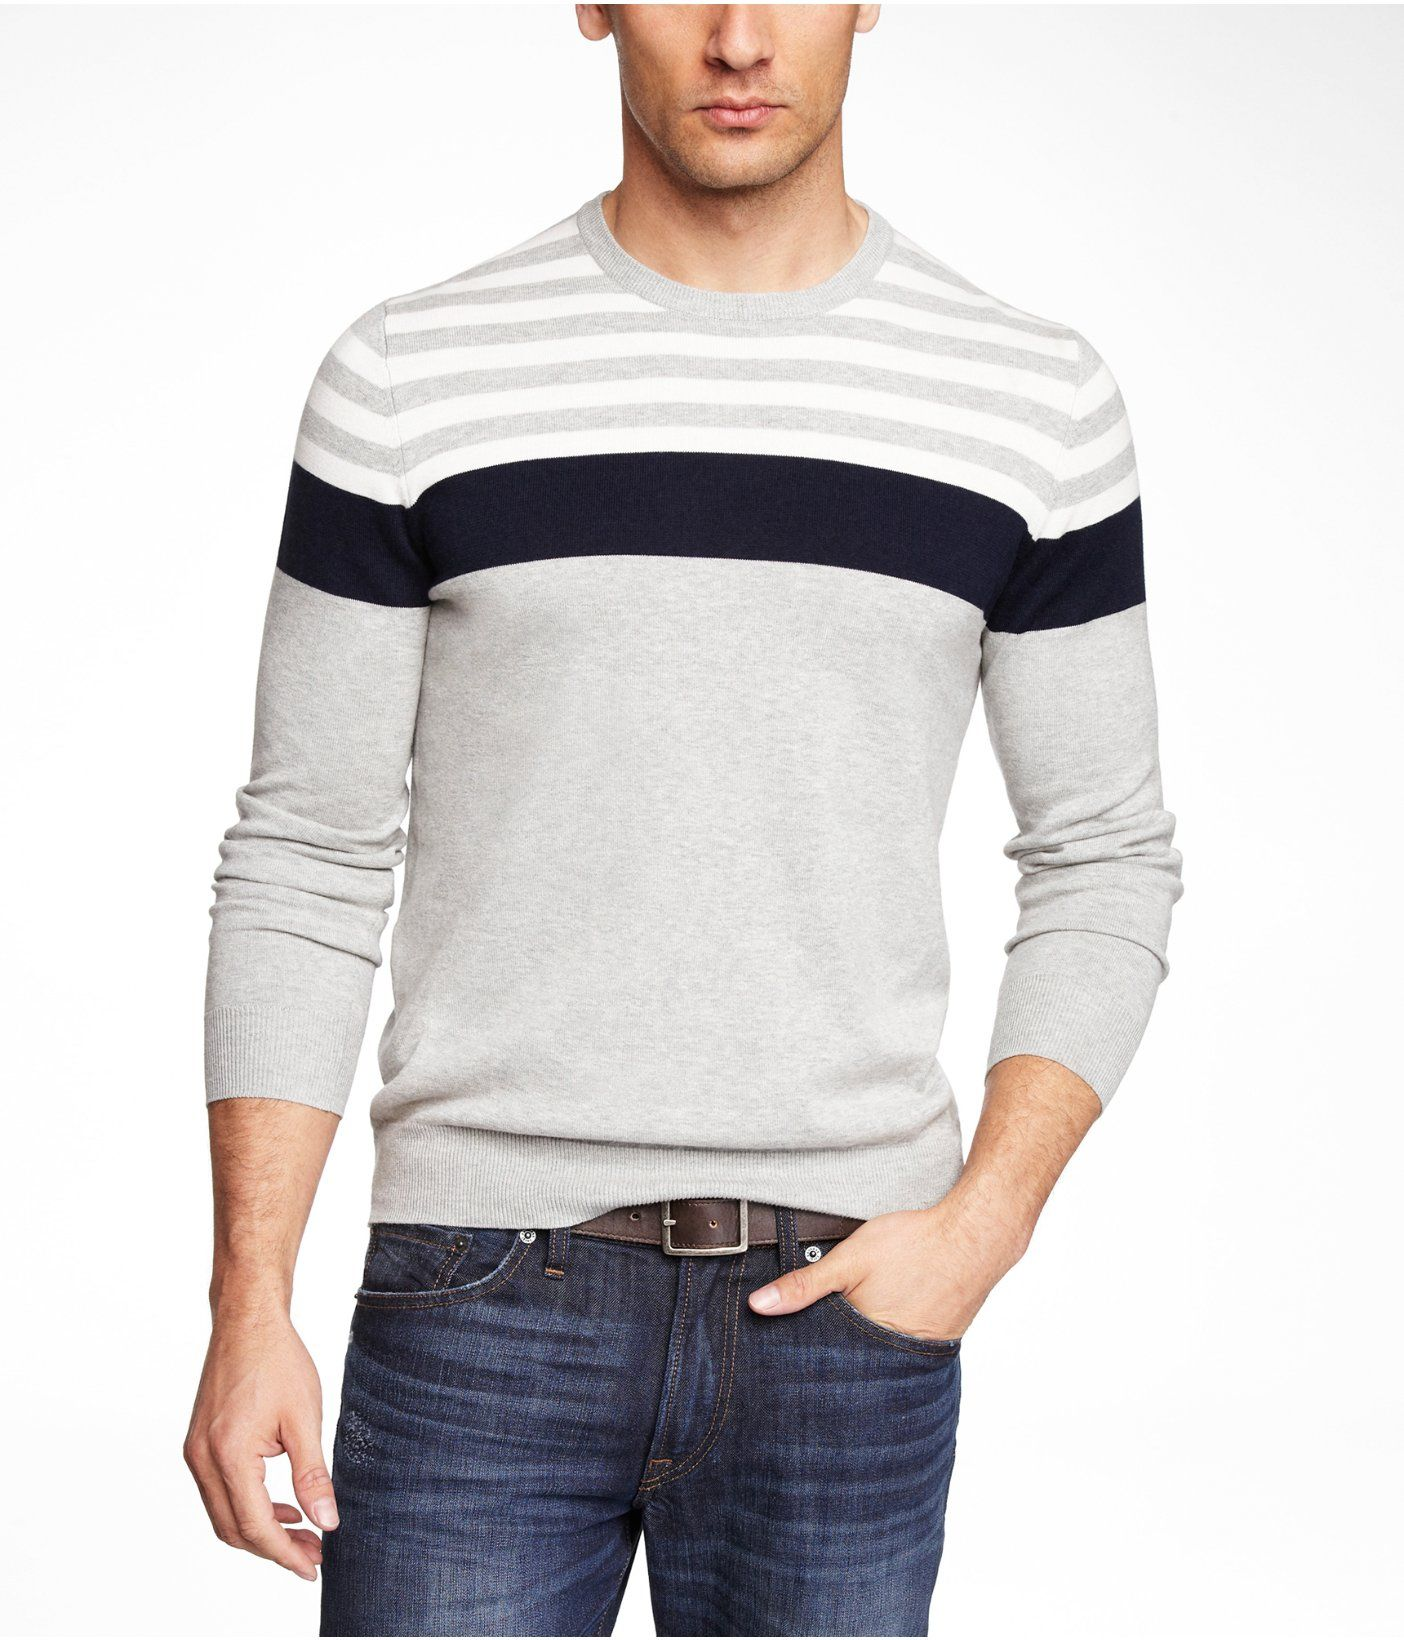 PLACED STRIPE COTTON CREW NECK SWEATER | Express